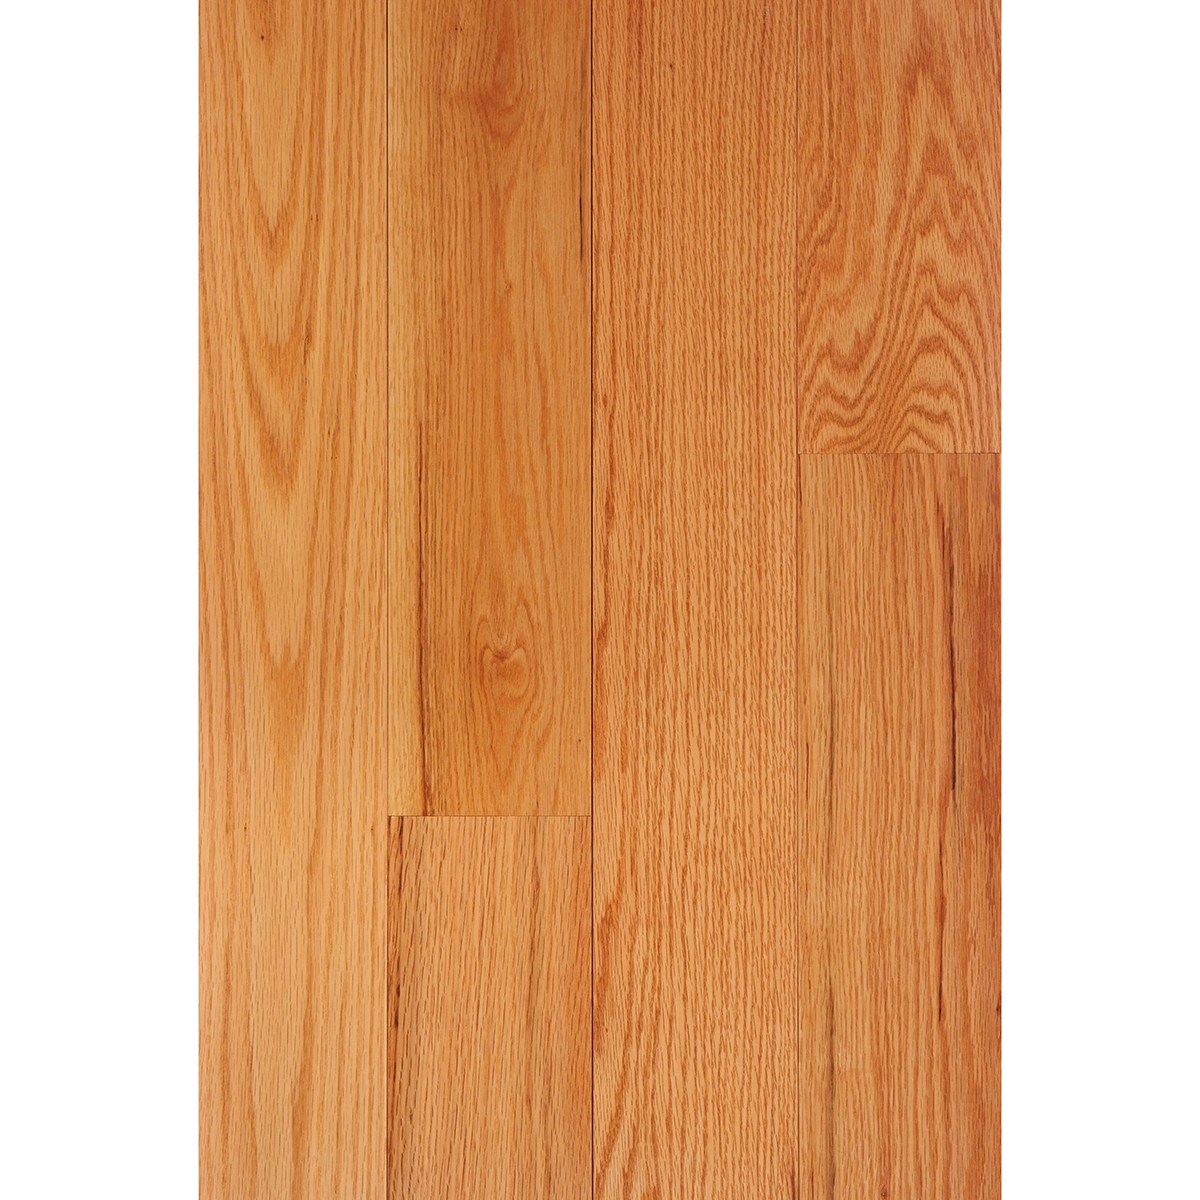 3 4 unfinished engineered hardwood flooring of red oak 3 4 x 5 select grade flooring regarding prefinished clear semi gloss 3 4